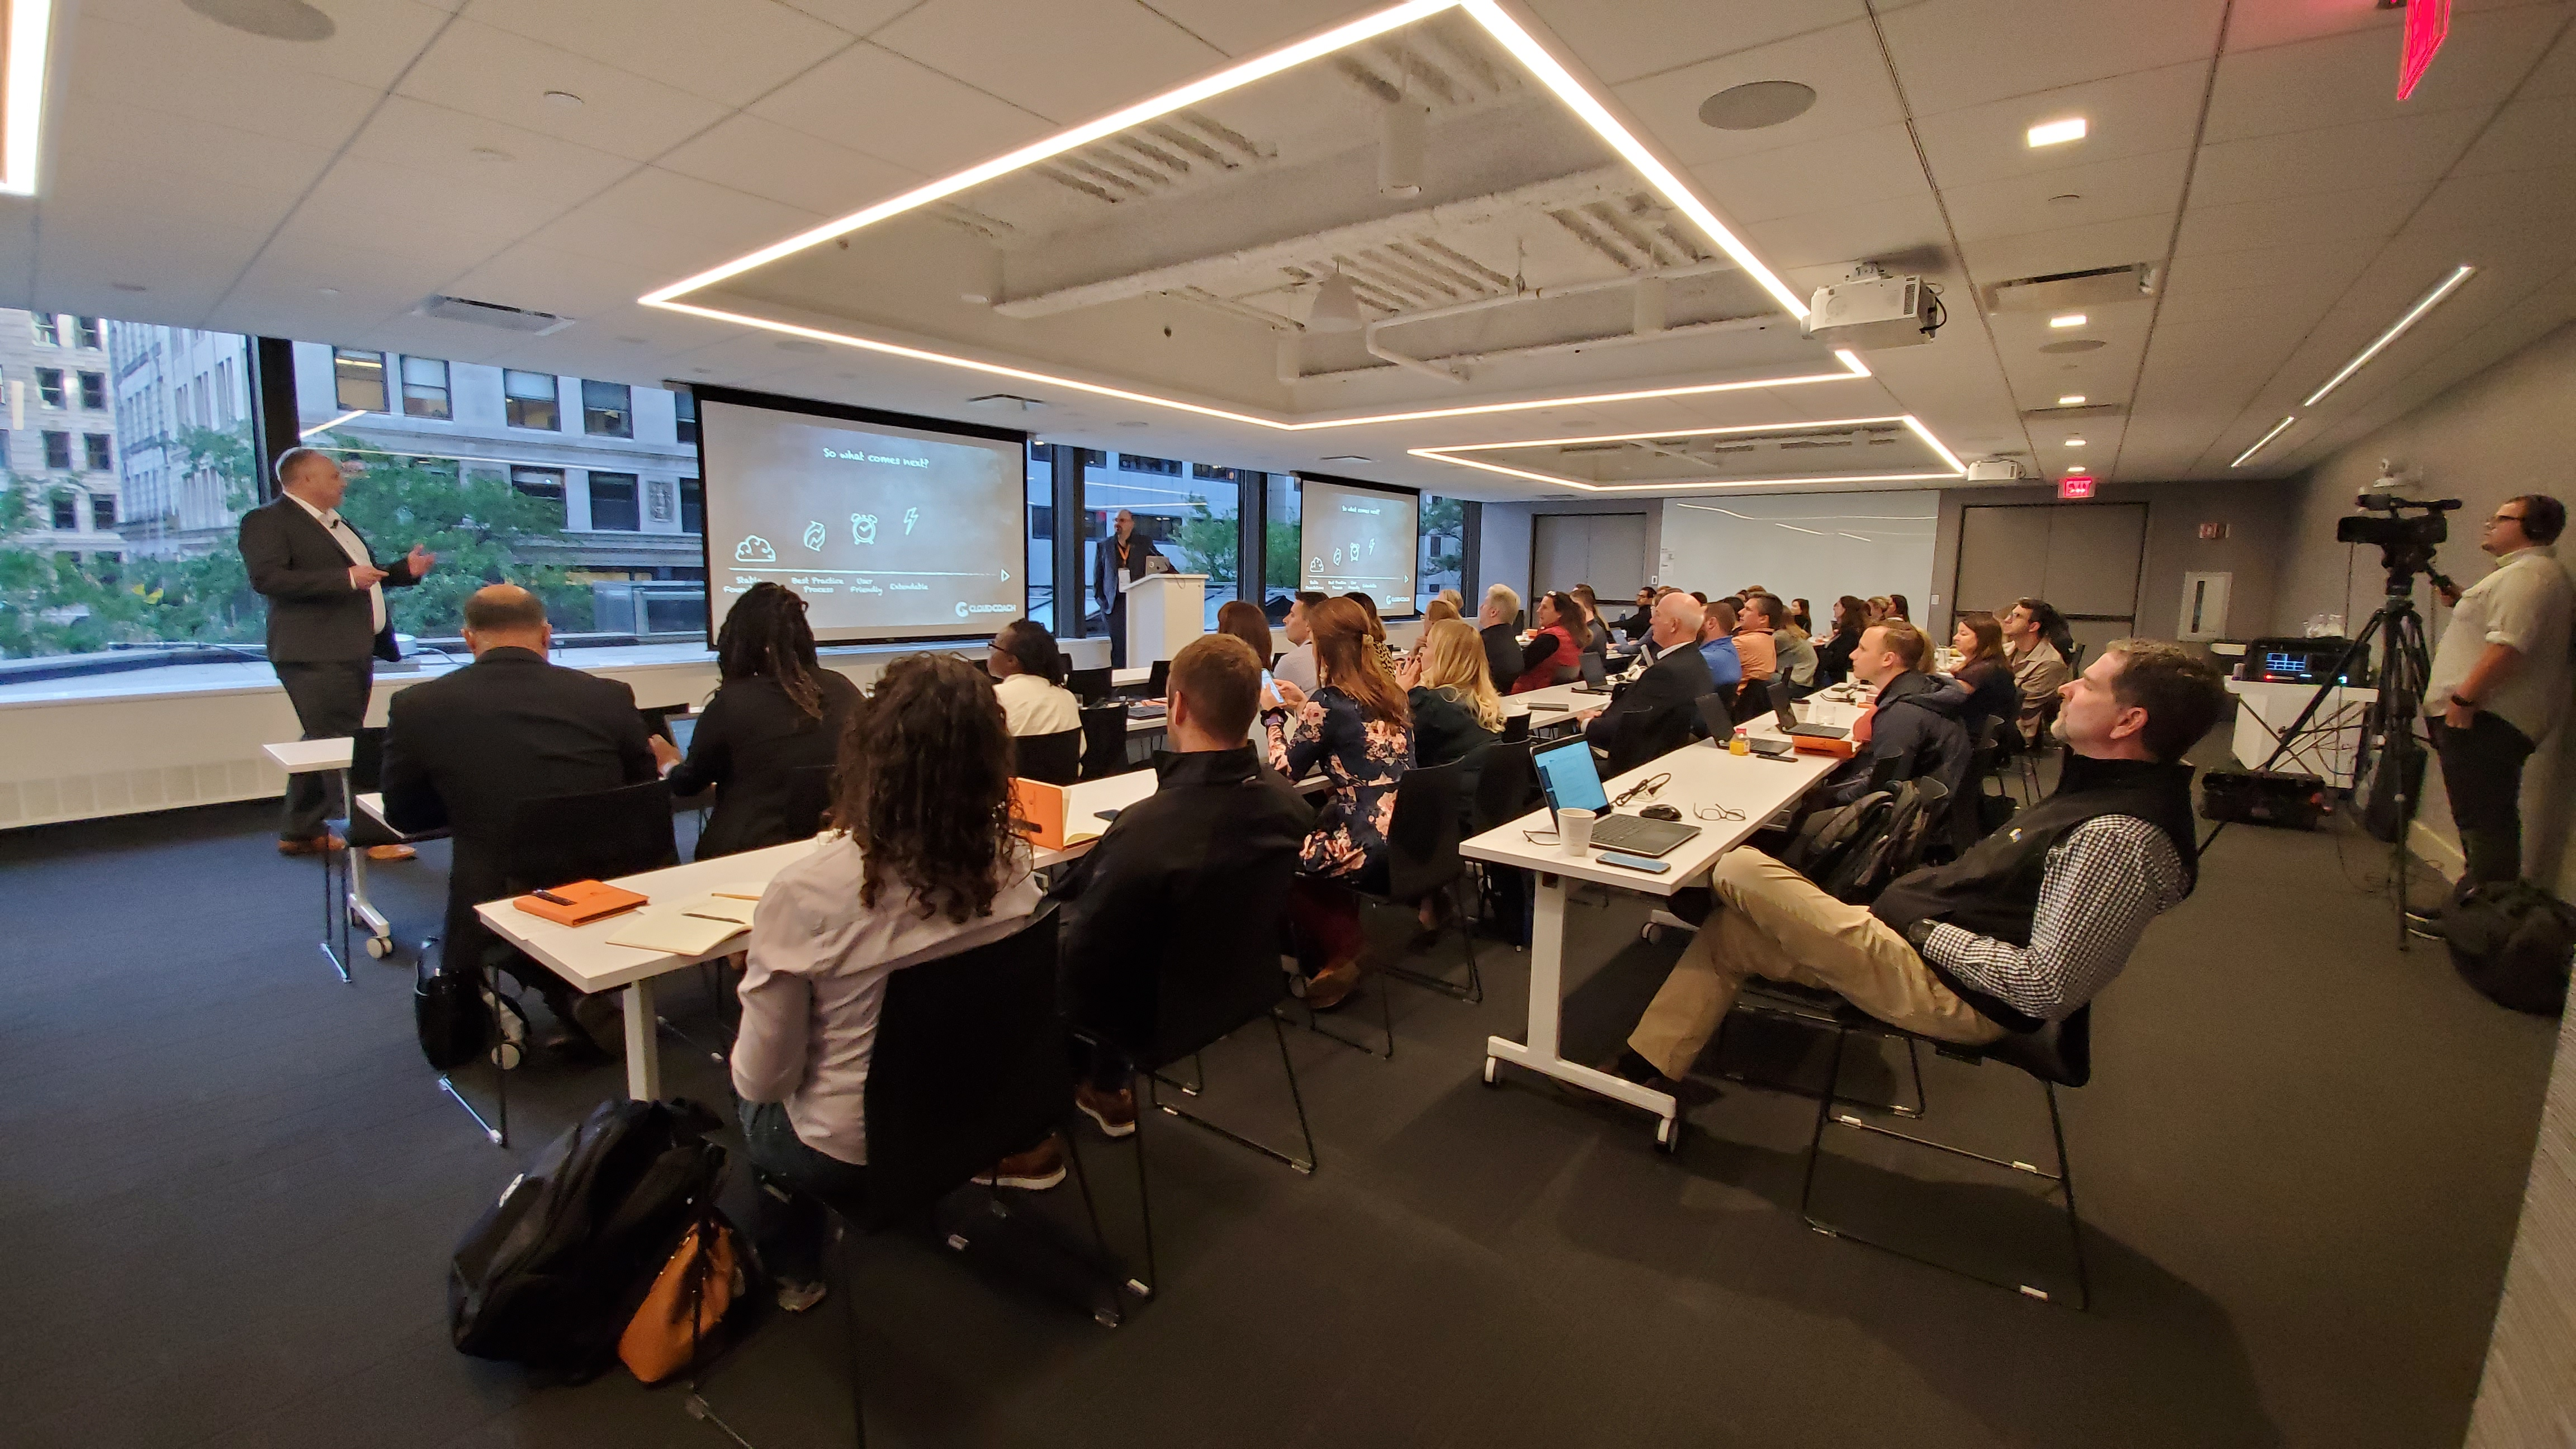 Sadhana Consulting Attends Boston's Cloud Coach User Conference